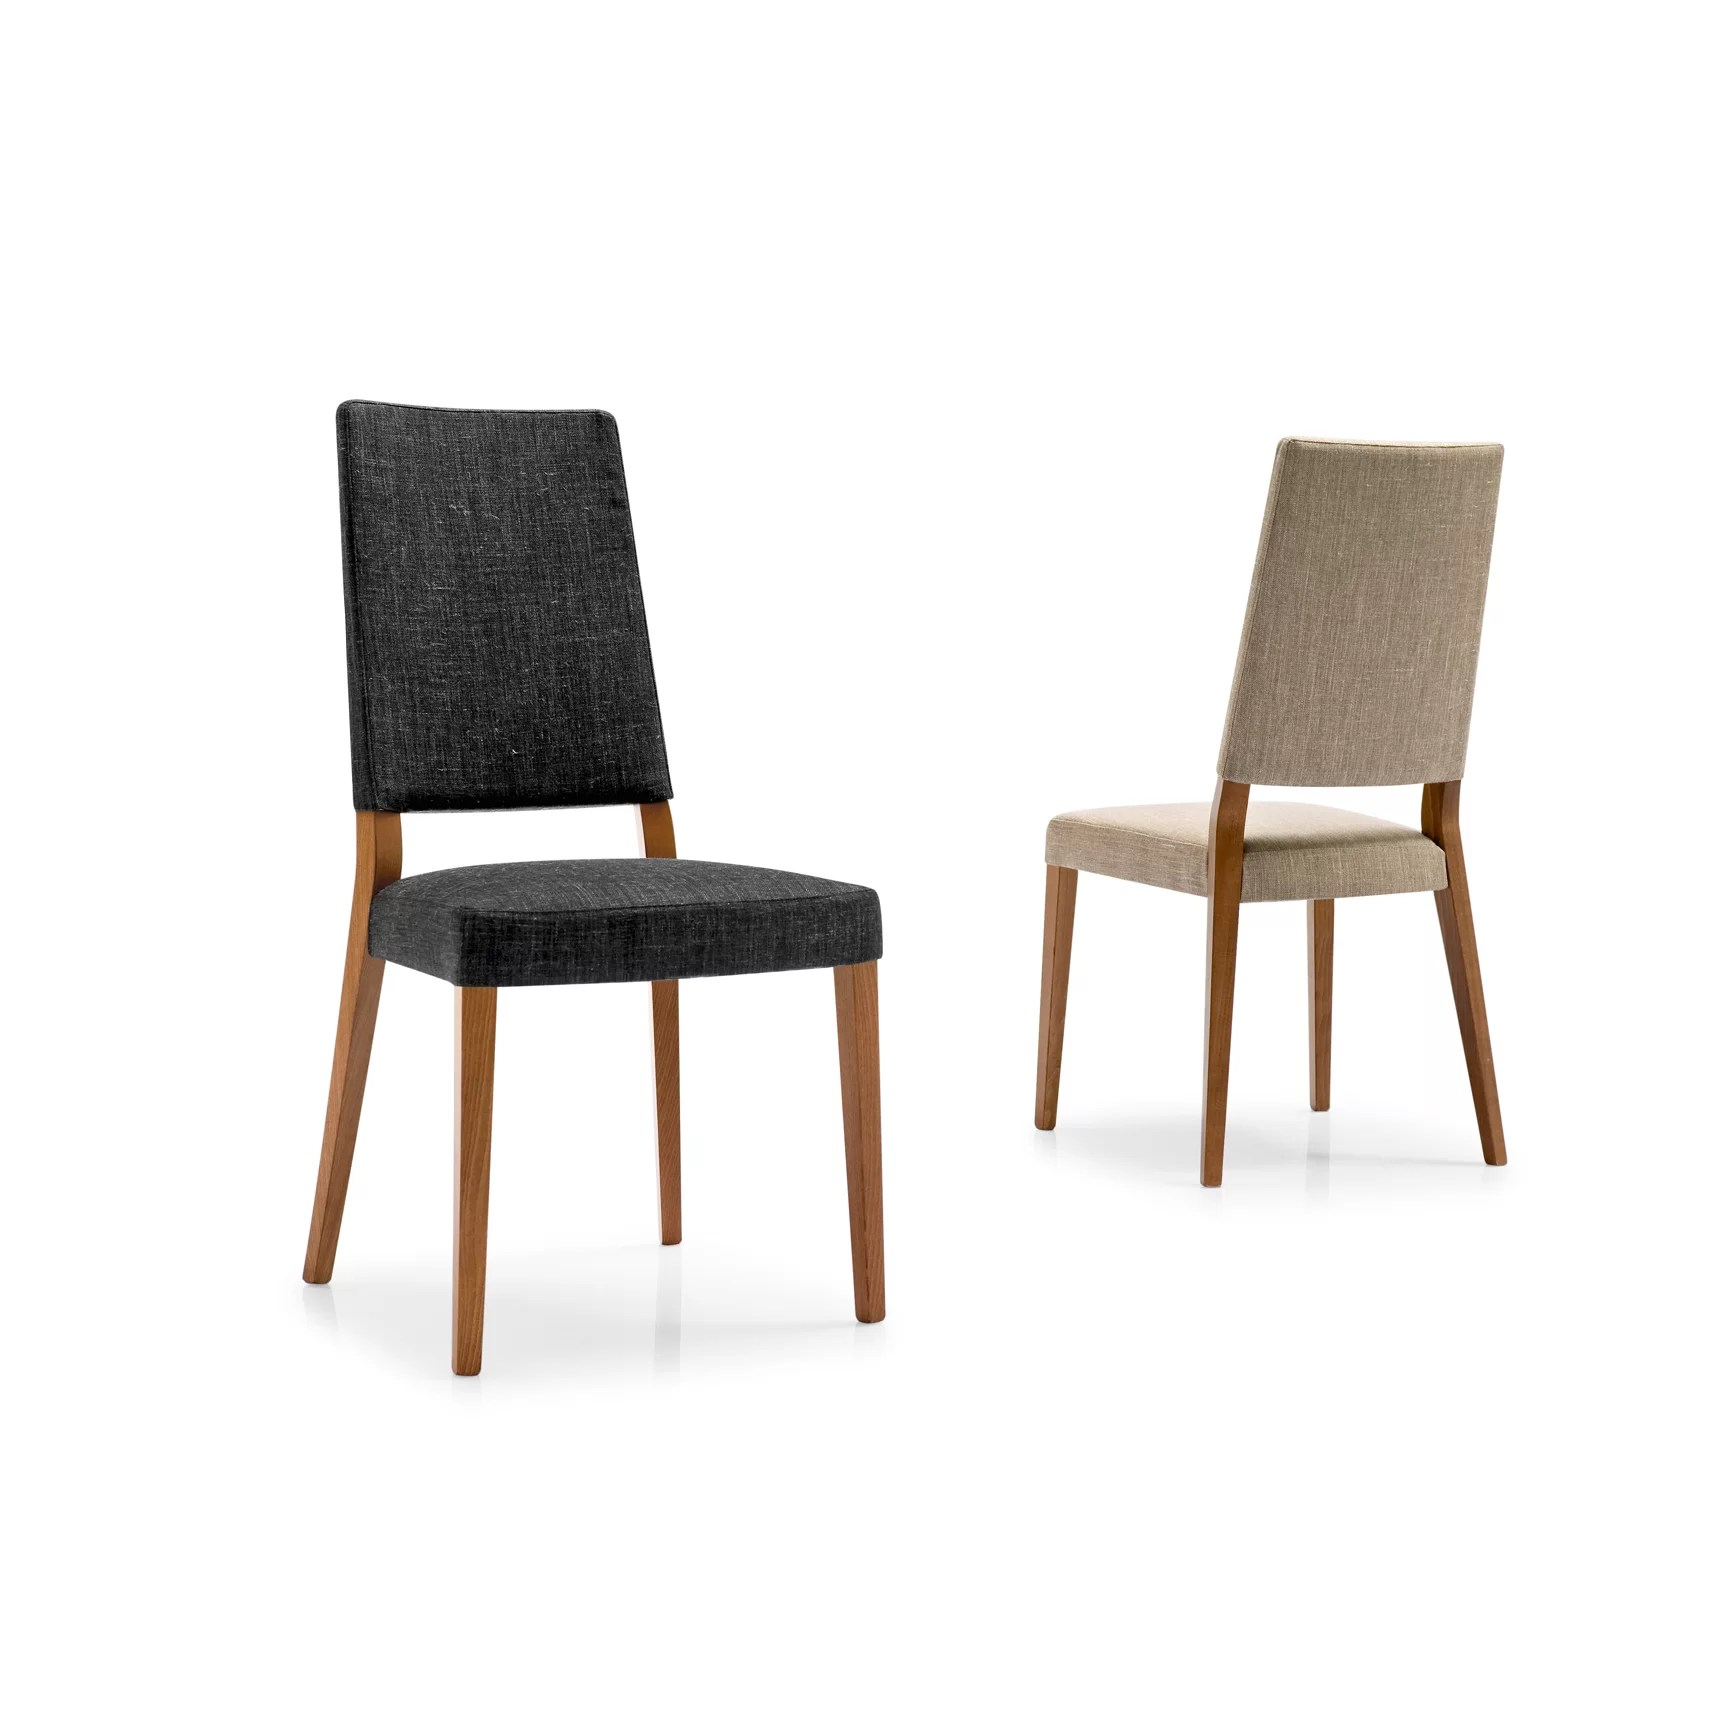 Calligaris Chairs Calligaris Sandy Chair And Reviews Wayfair